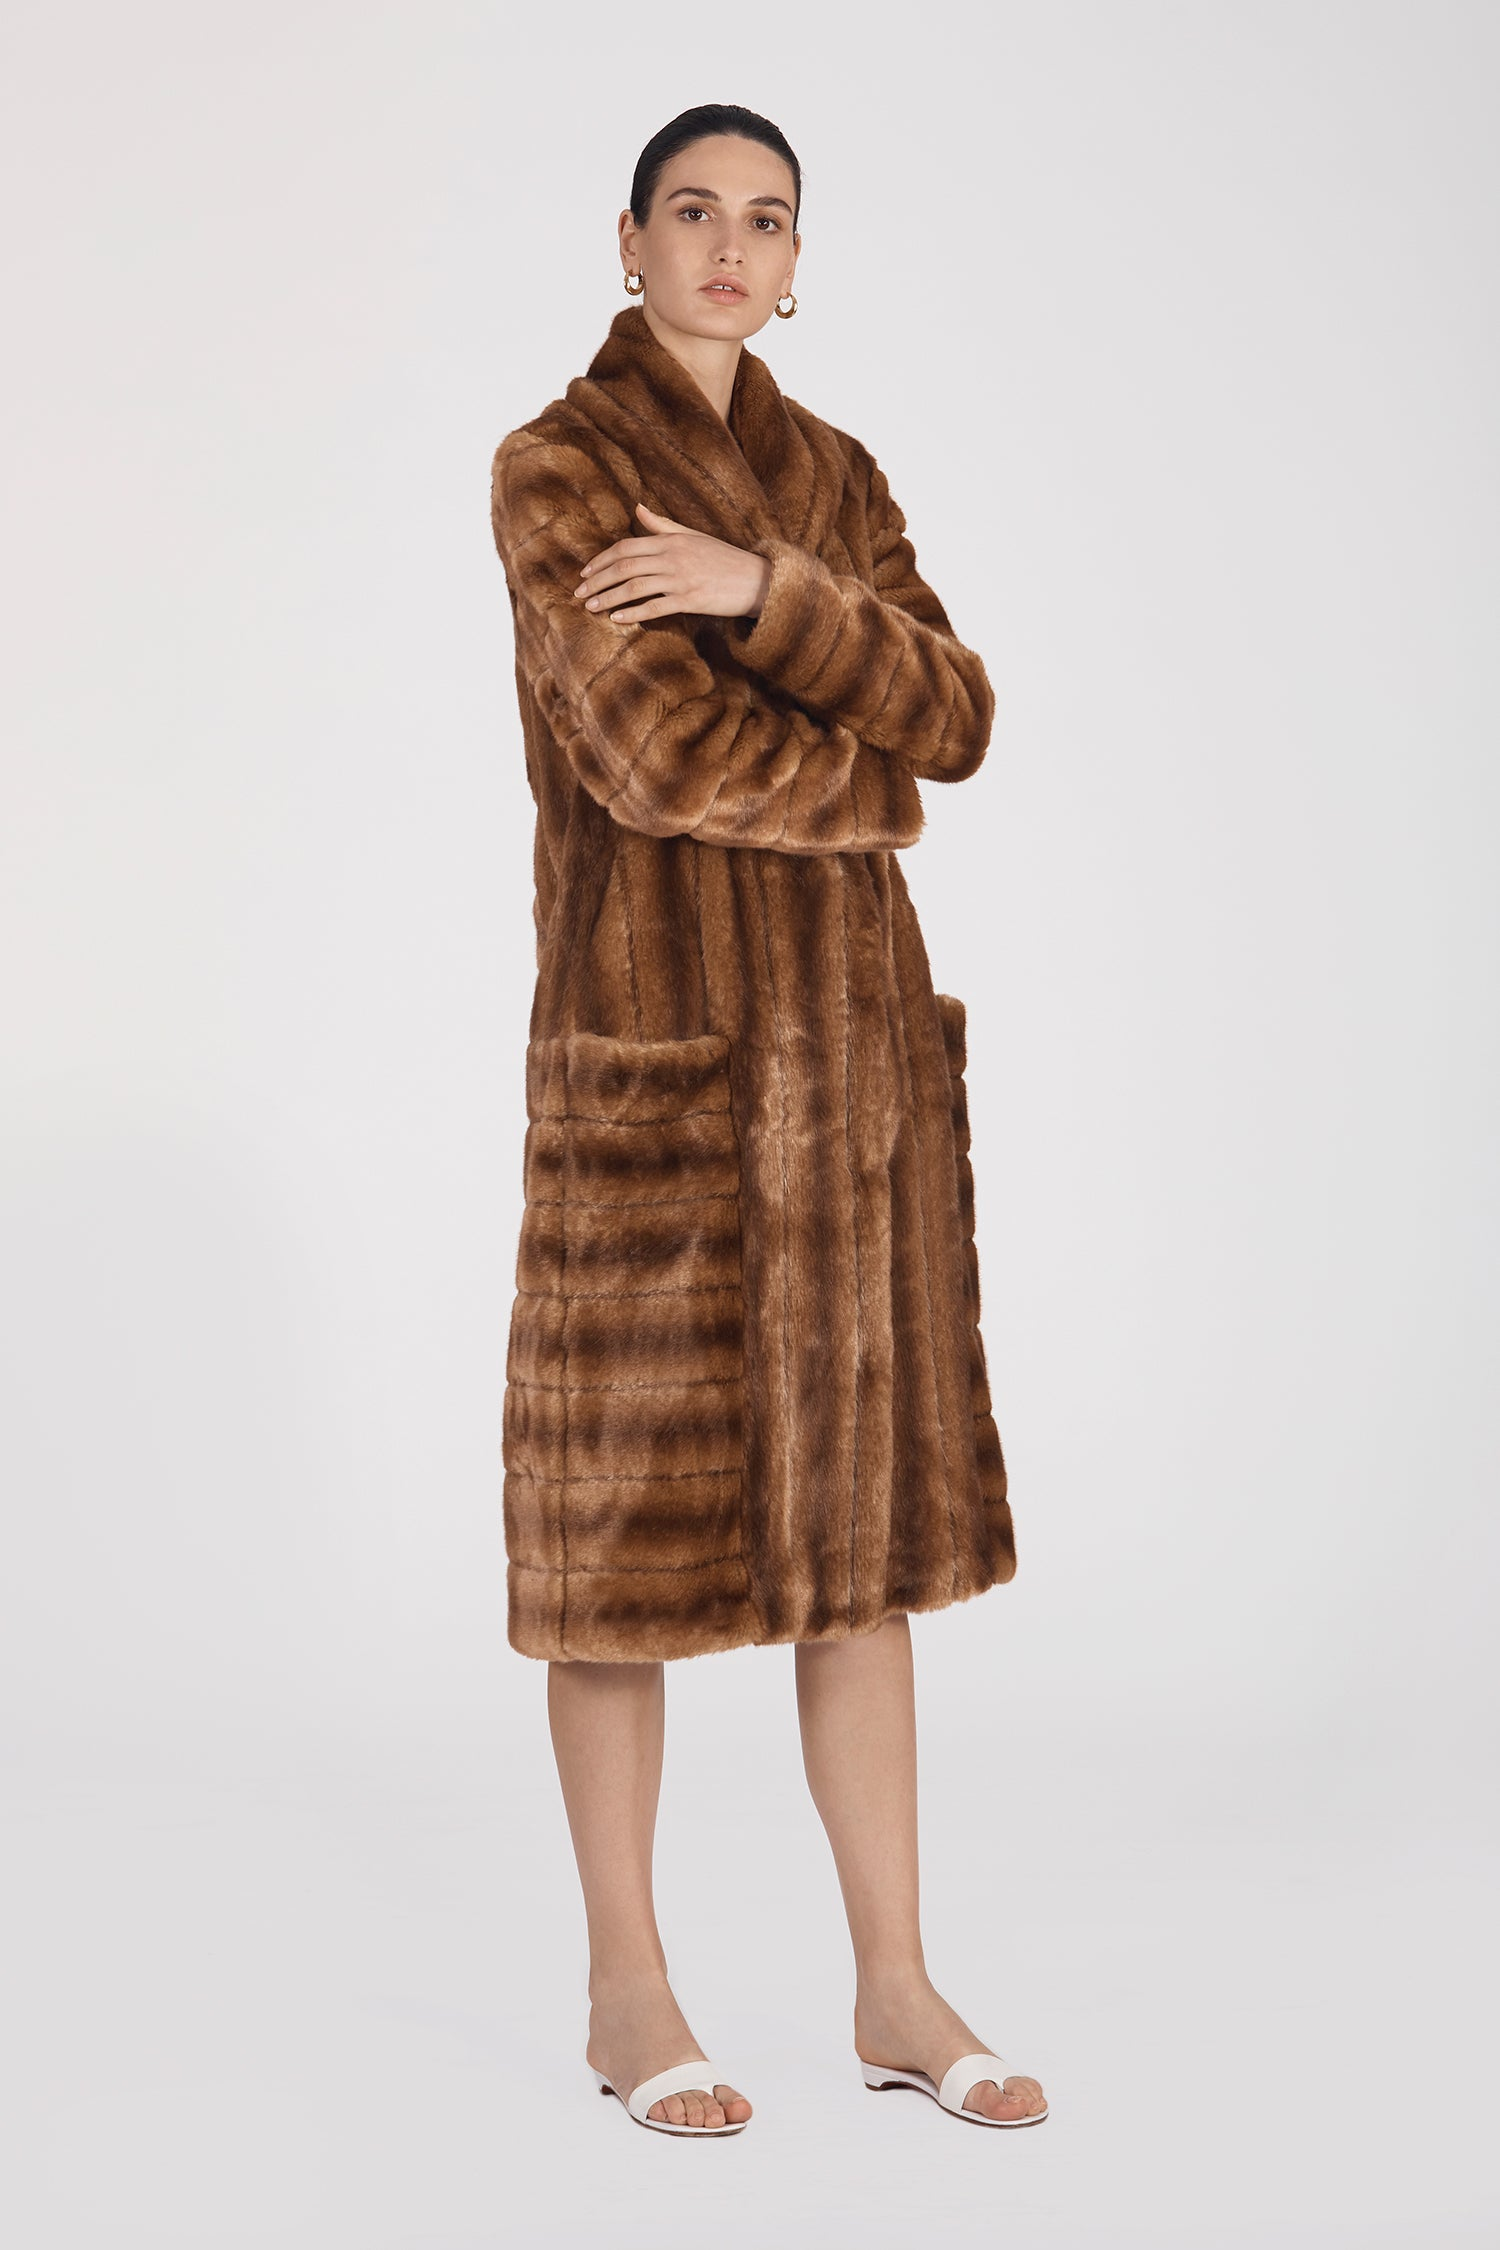 Marei1998's Timeless Echinacea Long Faux Fur Coat In Classic Brown Color. Featuring Oversized Silhouette And Wide Shawl Neckline. Investment Piece / Winter Essential. As Worn By The Model. Side View. Resort 2020 Collection - Furless Friendship.